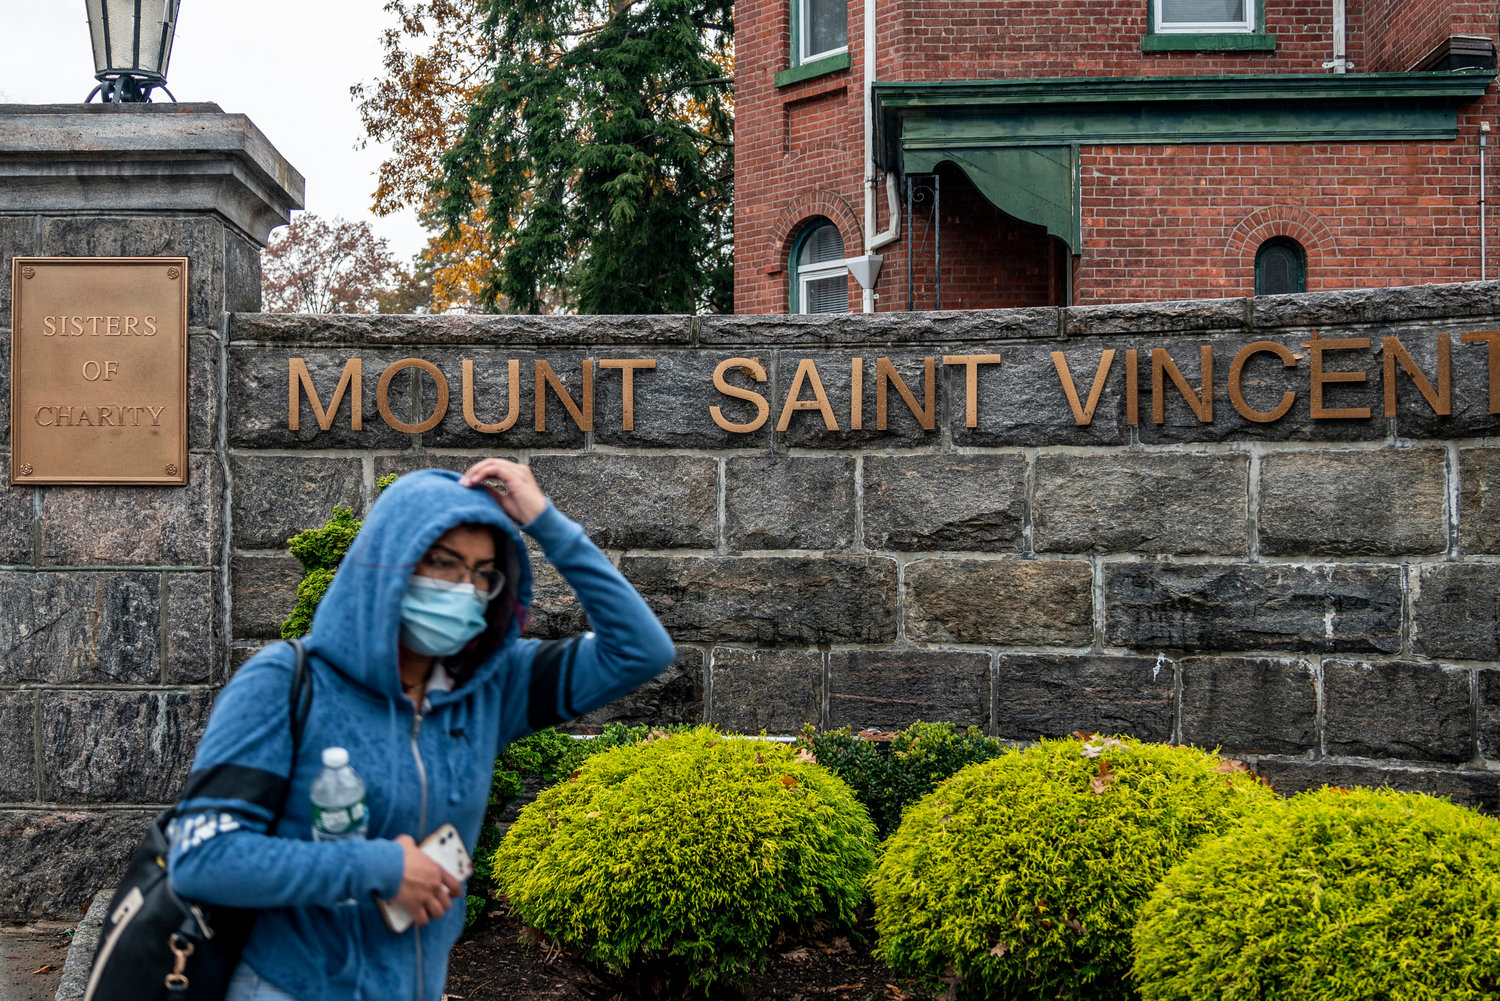 The College of Mount Saint Vincent originally planned to host some in-person classes up to and including finals week. But following guidance from Gov. Andrew Cuomo — and increased coronavirus cases on campus and across the city — The Mount moved all classes fully online beginning Nov. 16.